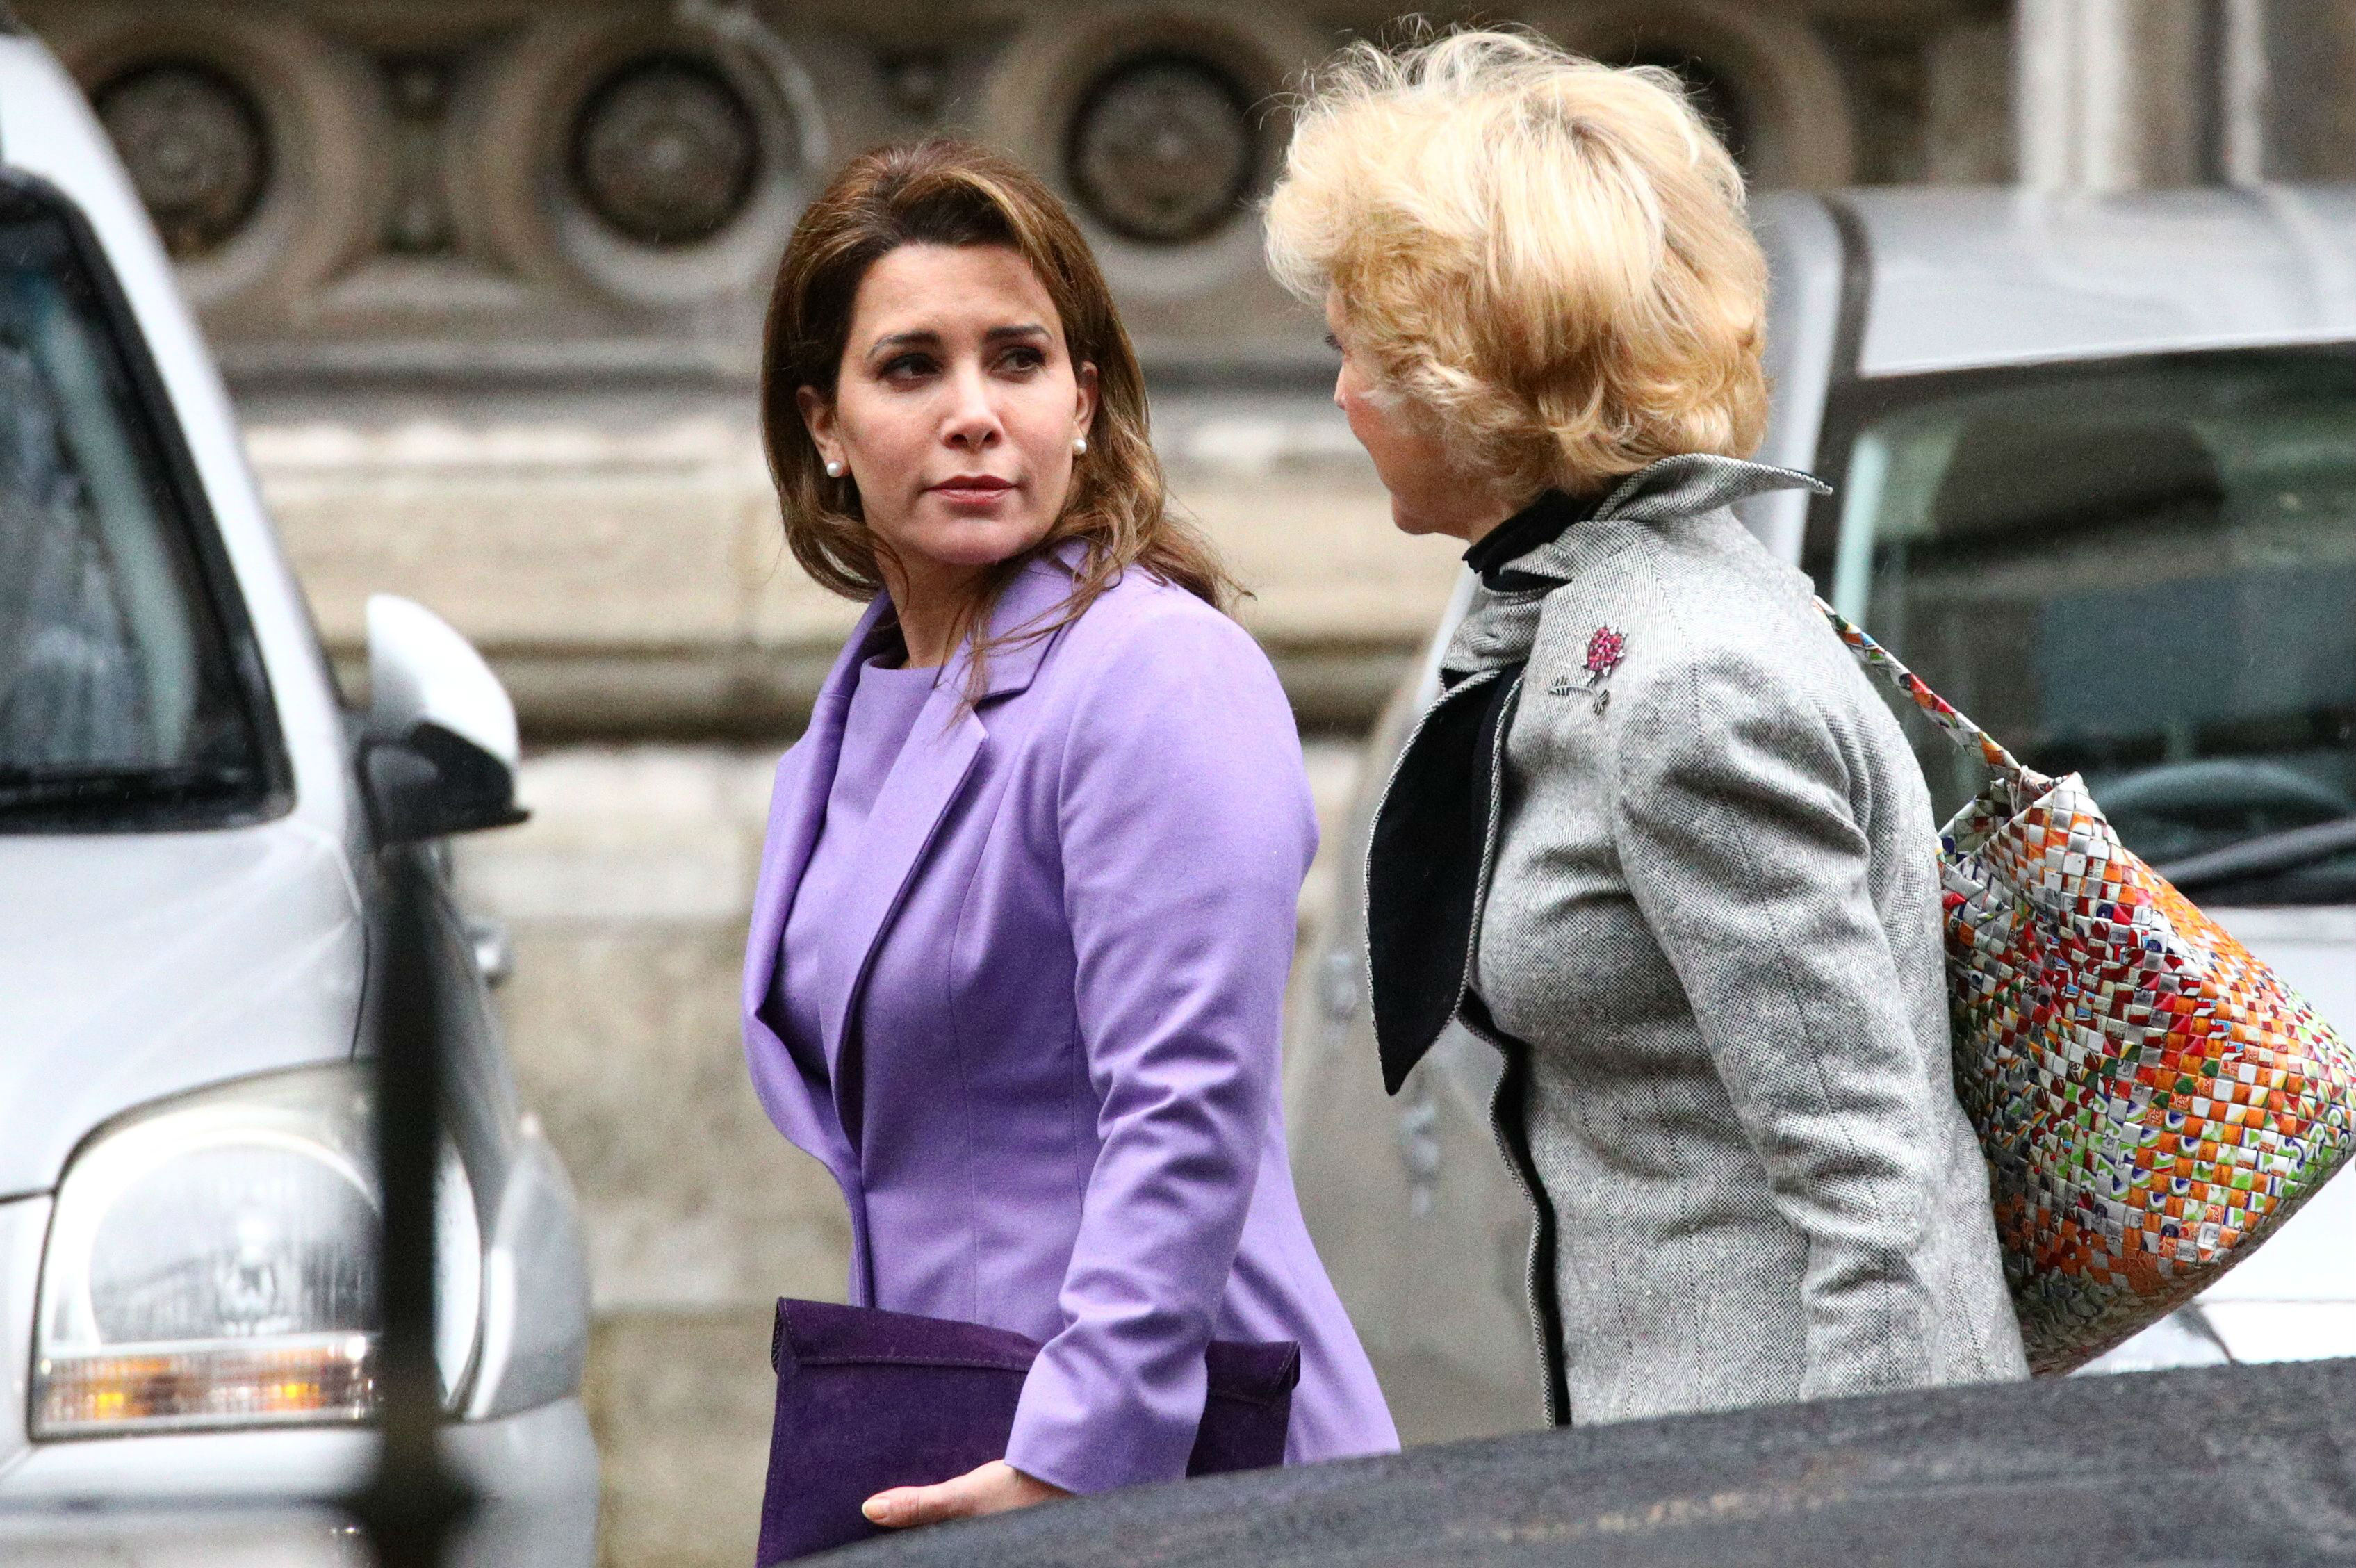 Princess Haya bint Al Hussein, the wife of Dubai's Sheikh Mohammed bin Rashid Al Maktoum, and her lawyer Baroness Fiona Shackleton arrive at the High Court (Reuters)